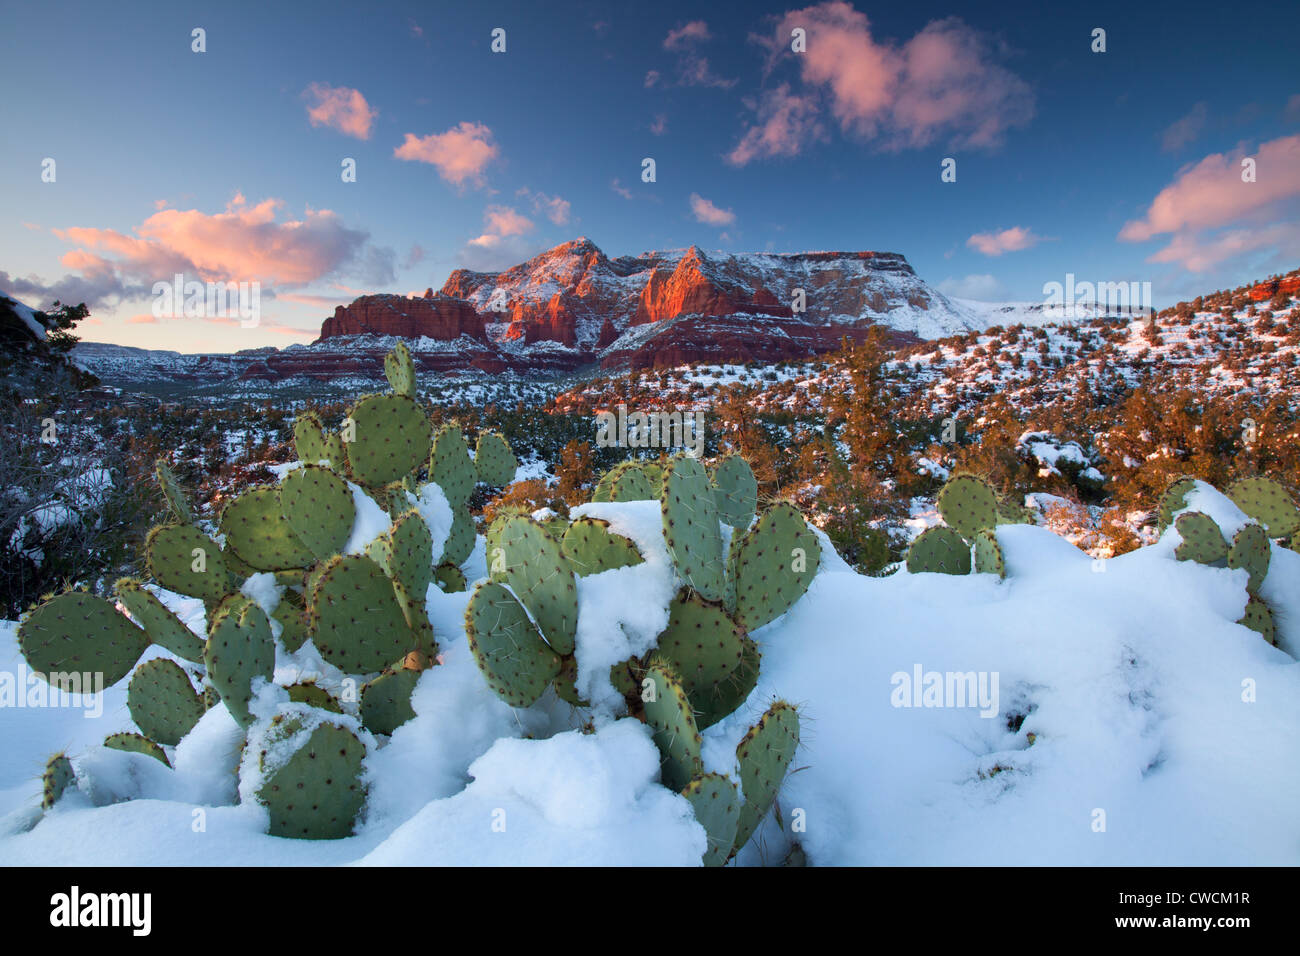 Winter Schnee auf Schnebly Hill, Coconino National Forest, Sedona, Arizona. Stockbild